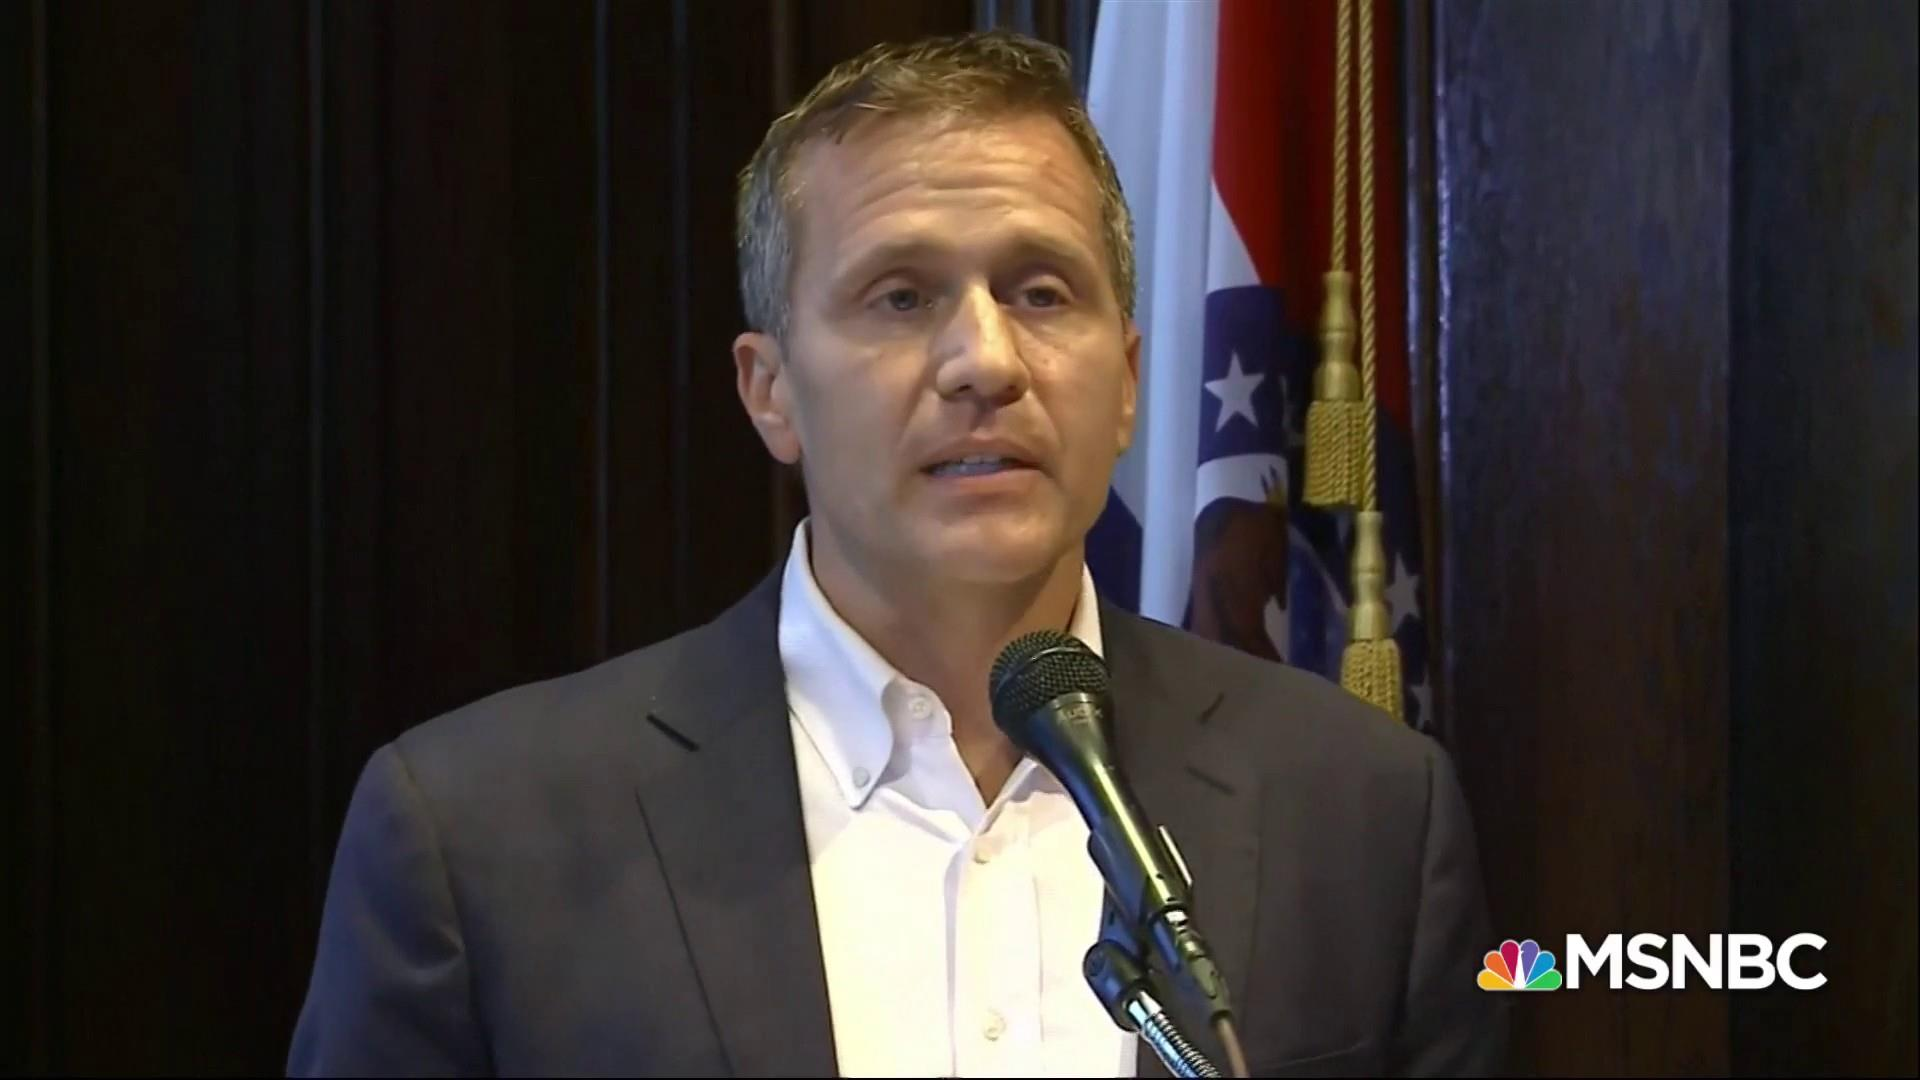 Eric Greitens resigns governorship with flurry of activity